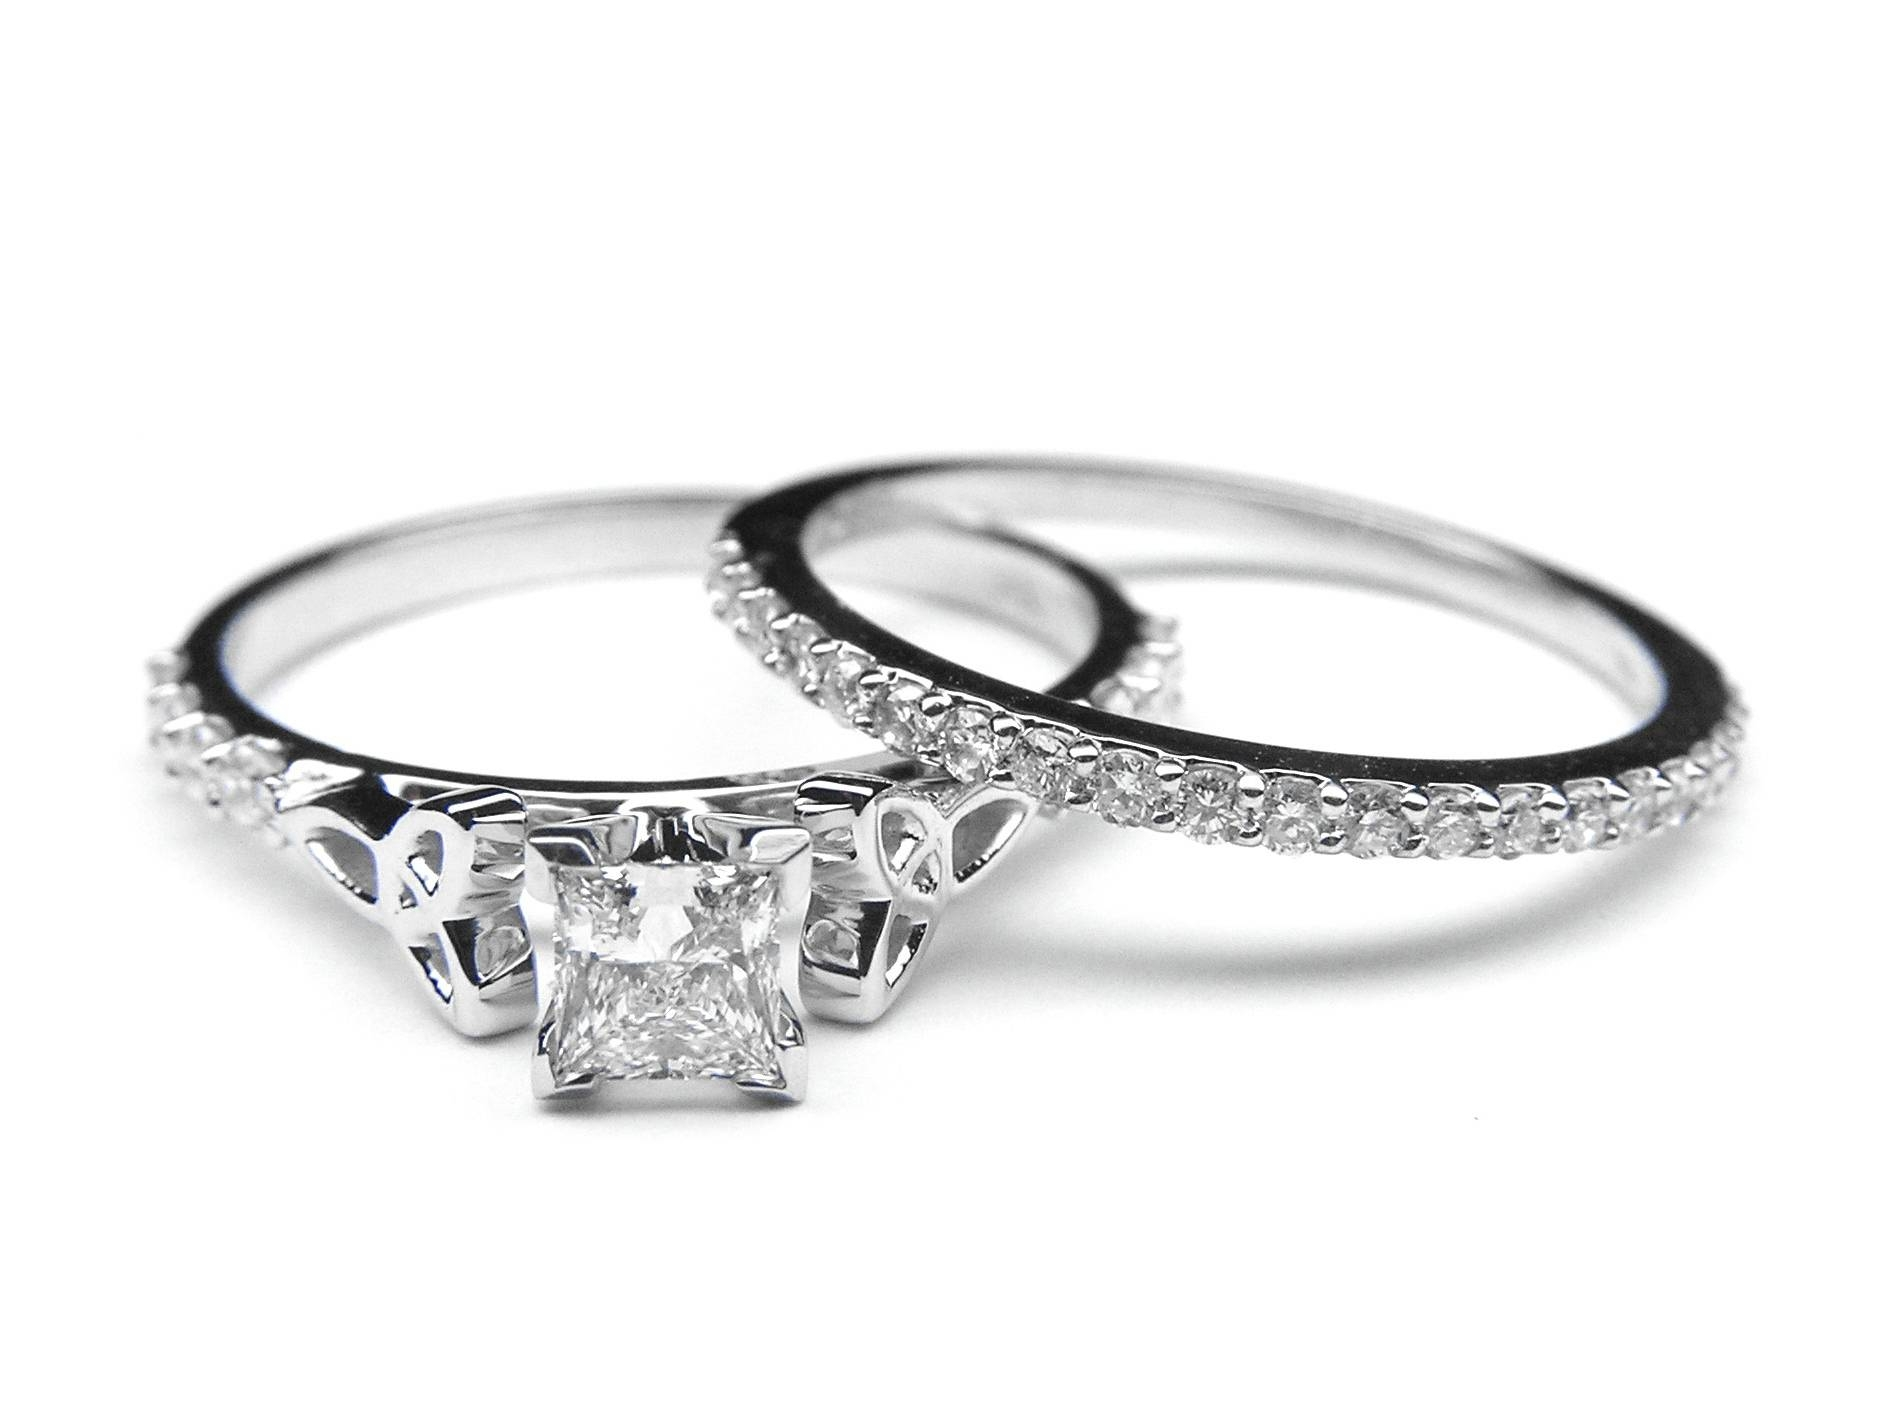 Celtic – Engagement Rings From Mdc Diamonds Nyc Pertaining To Celtic Diamond Engagement Rings (View 8 of 15)